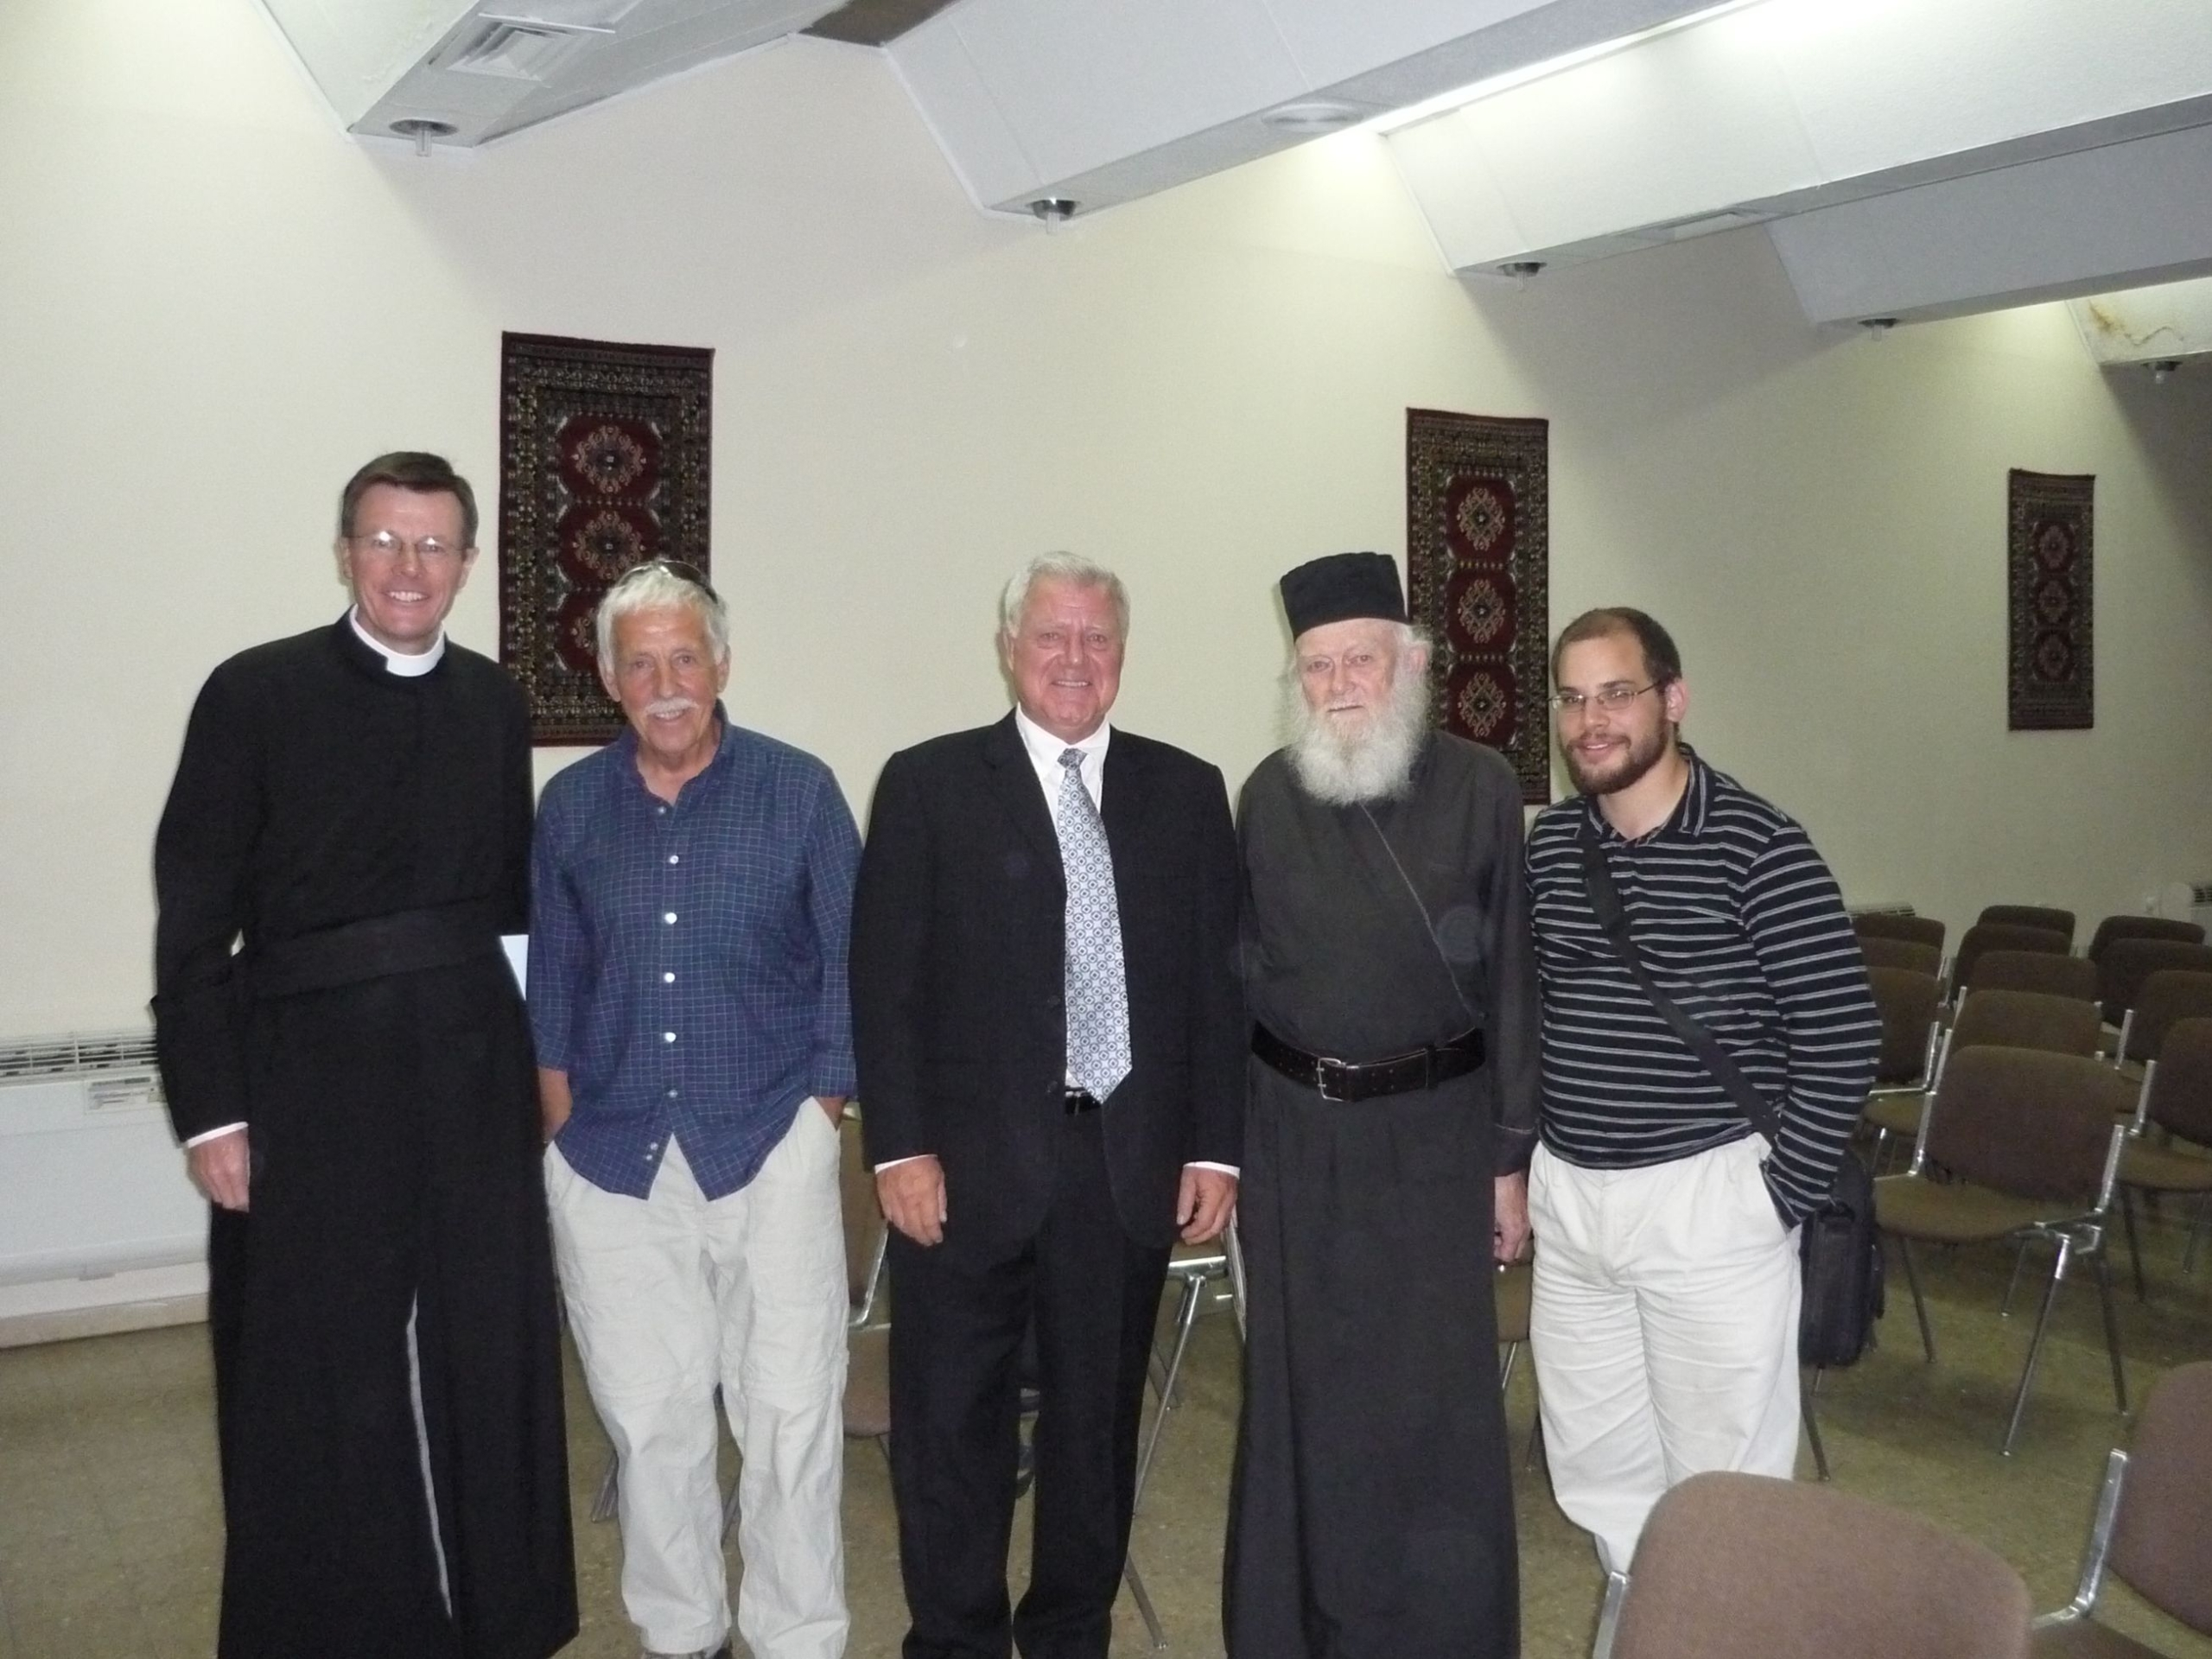 Image 19. Father Eamon Kelly, Dr. Soons, Bishop Barclay and Student